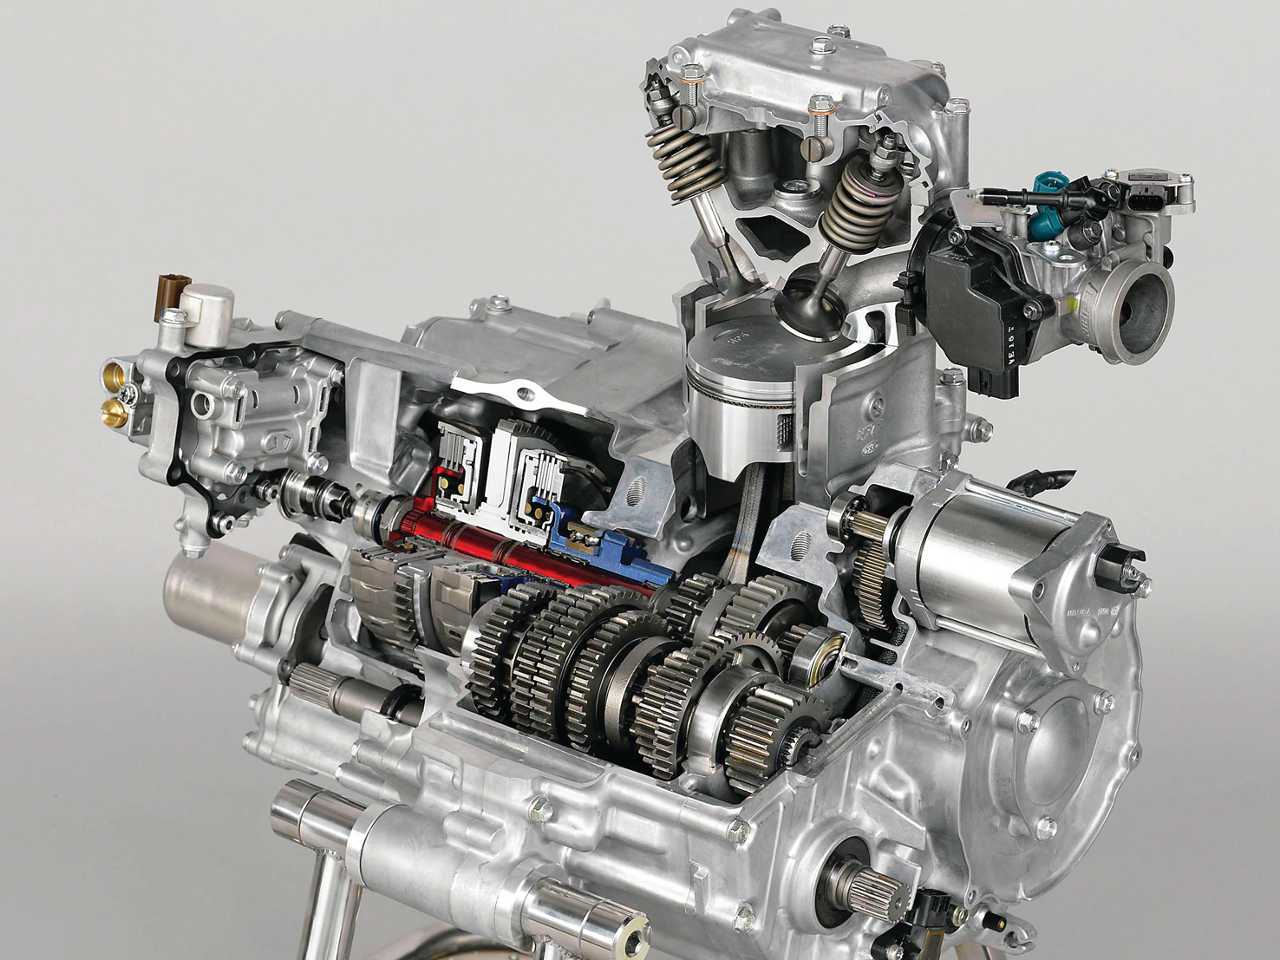 hight resolution of 2015 honda fourtrax foreman rancher close up engine